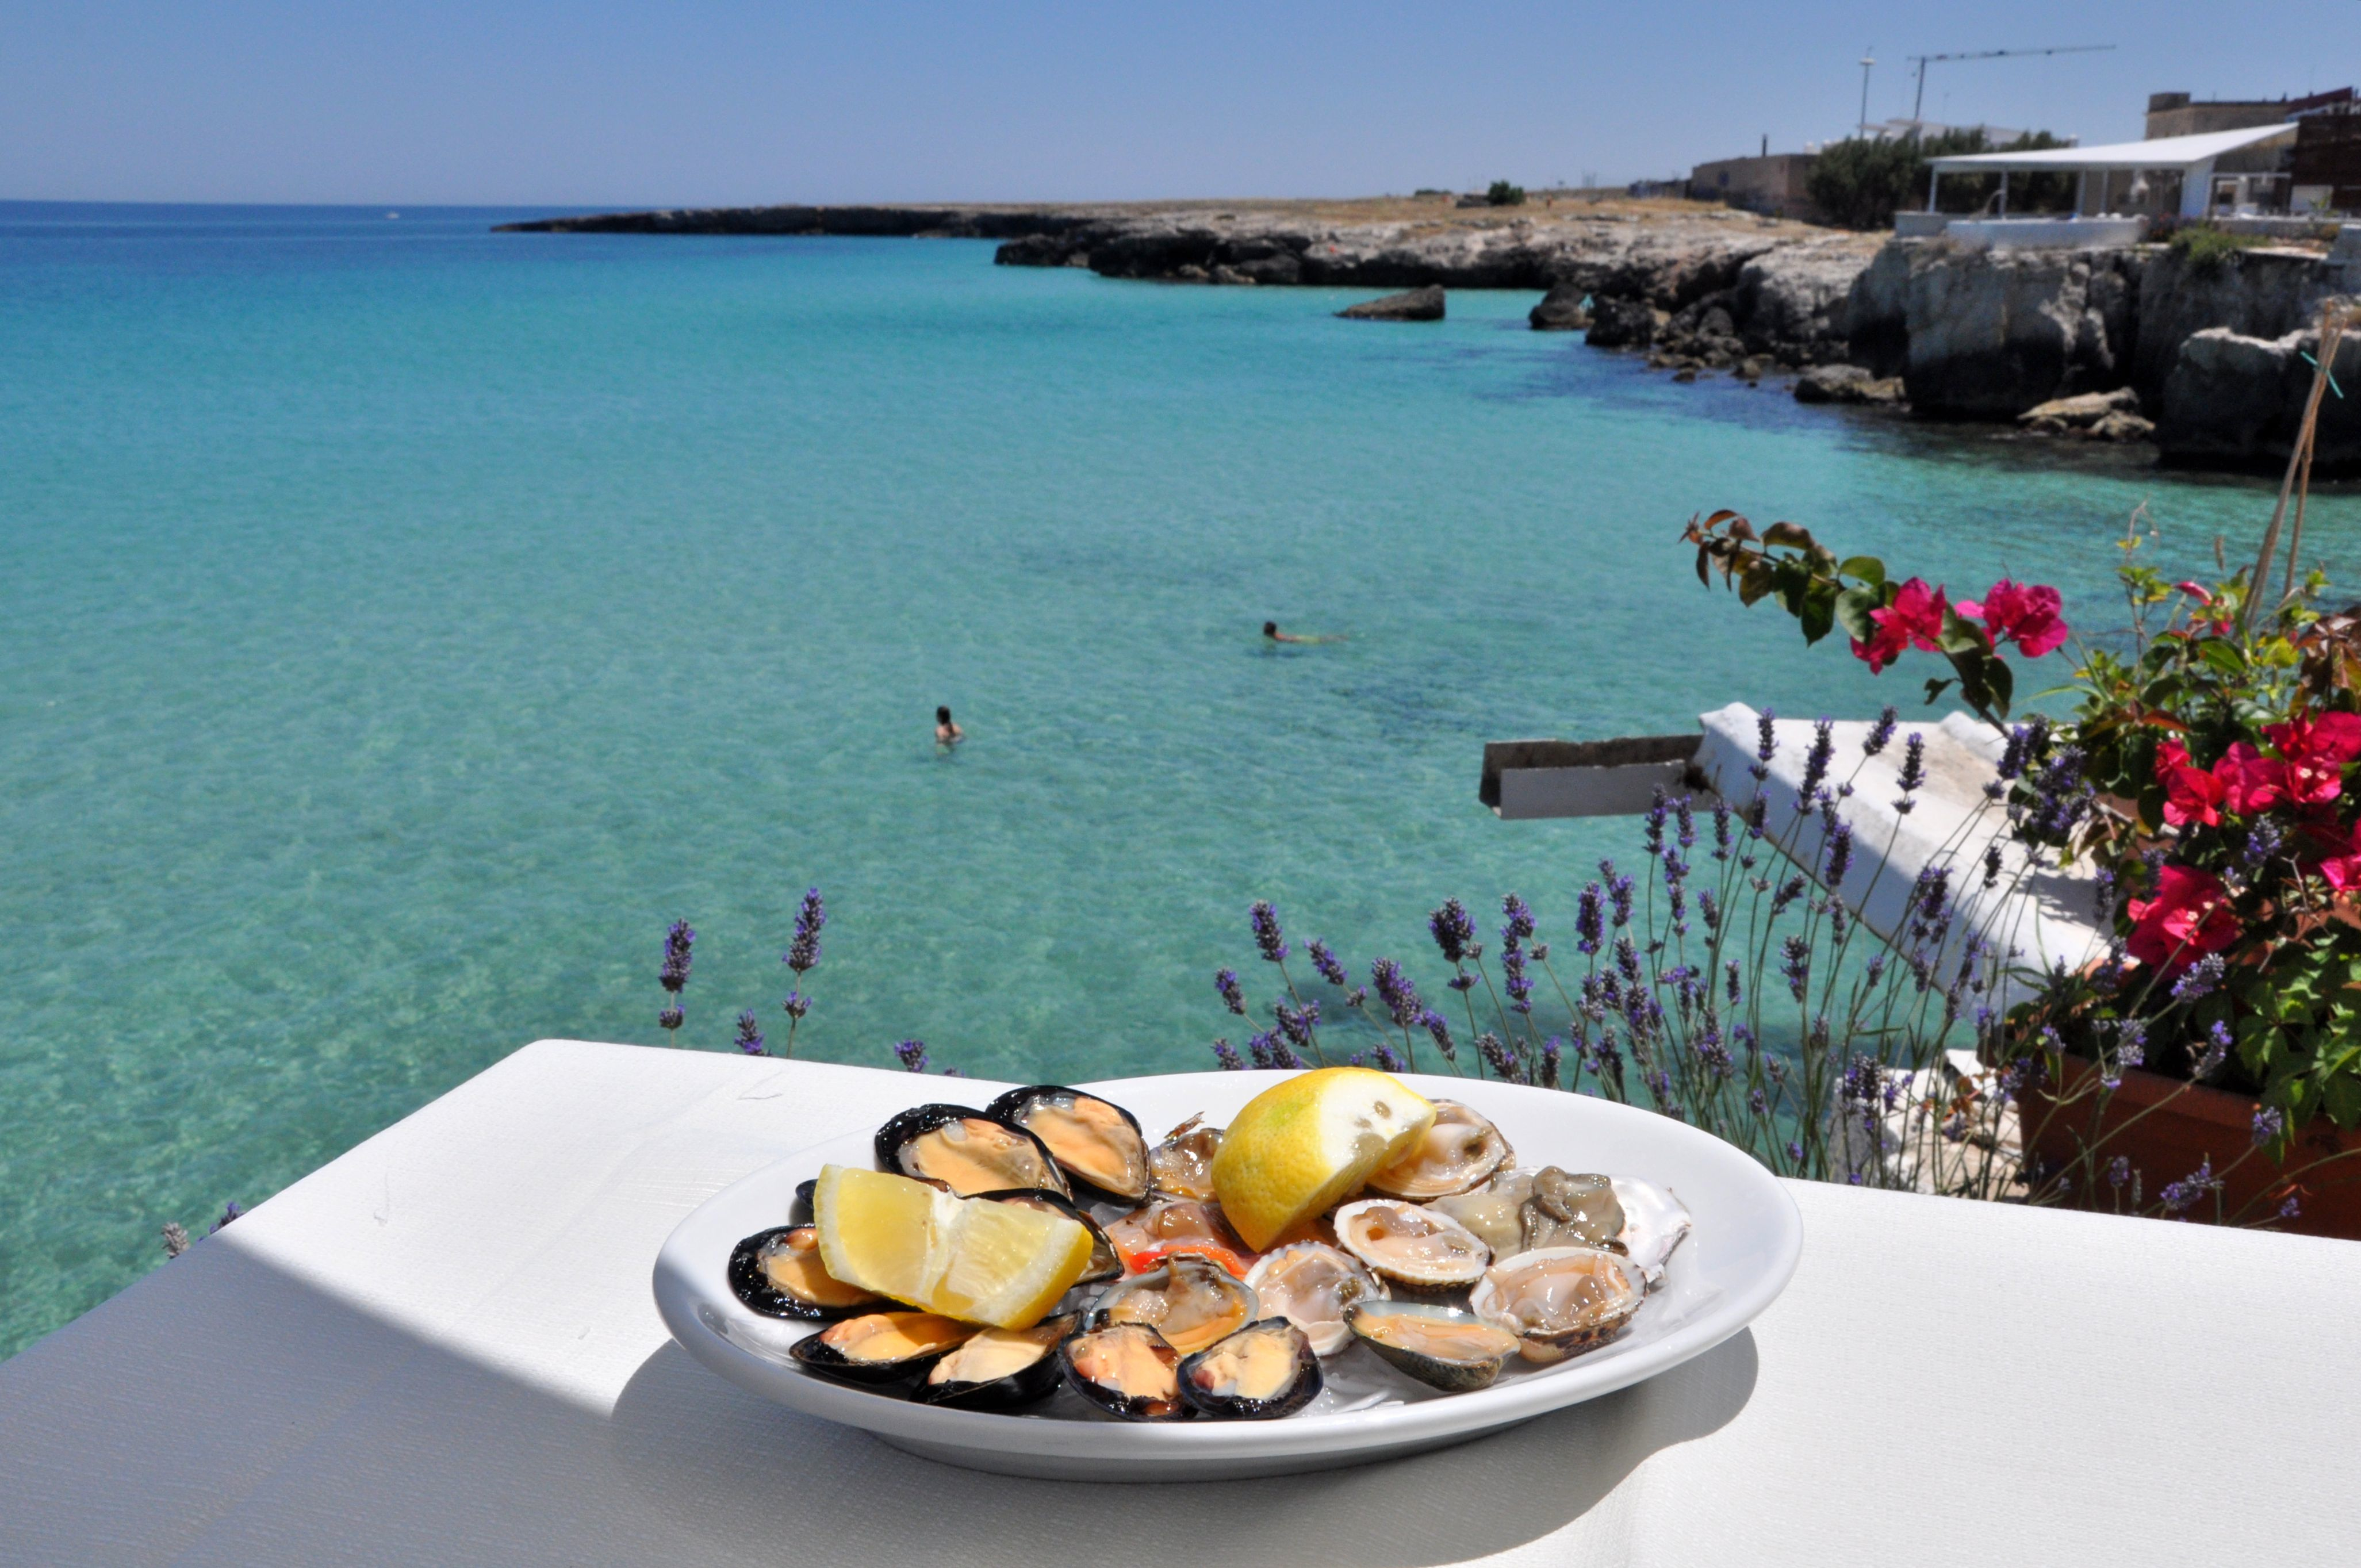 Map Of Italy Puglia Region.The Most Famous Foods Of Puglia And The Salento Peninsula